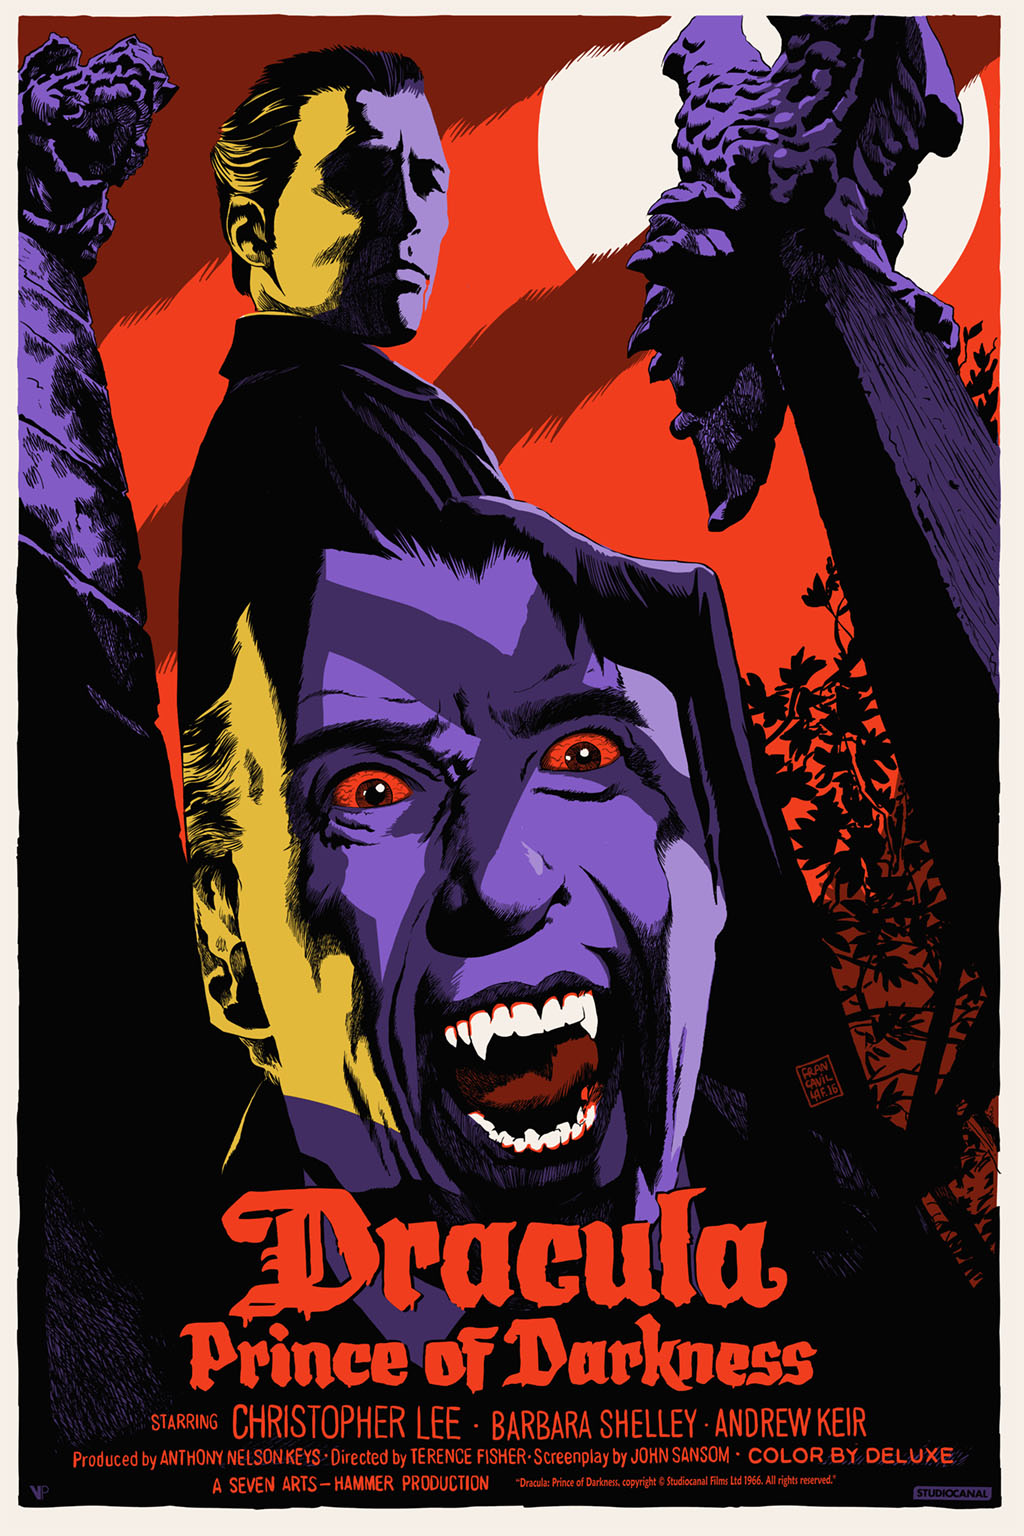 Dracula: Prince of Darkness Print by Francesco Francavilla Revealed by Vice Press